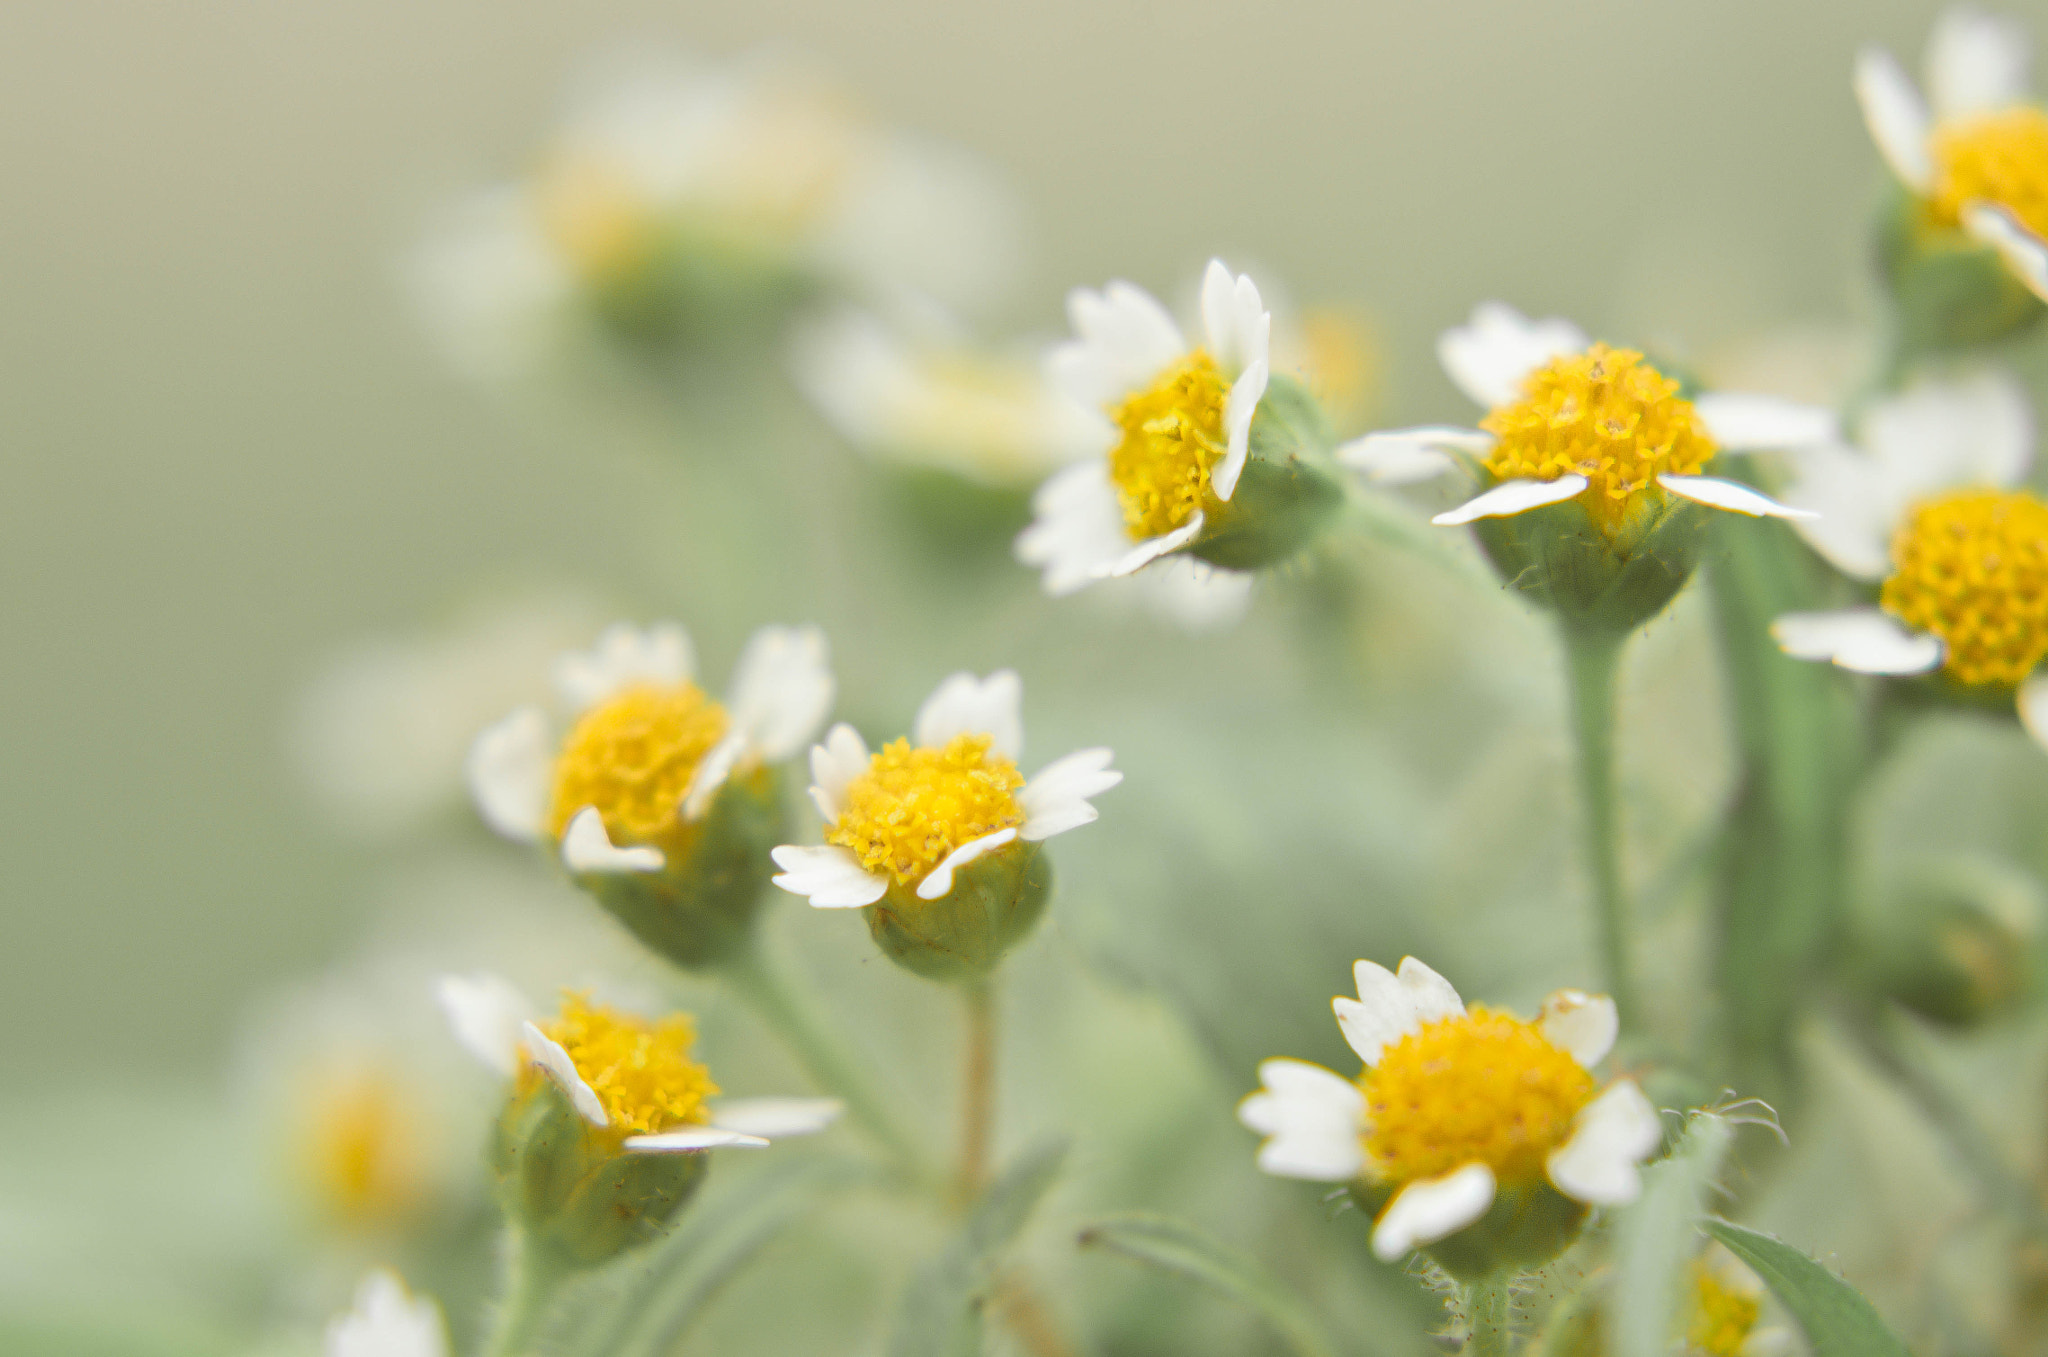 Photograph Little flowers by Mariana Ito on 500px